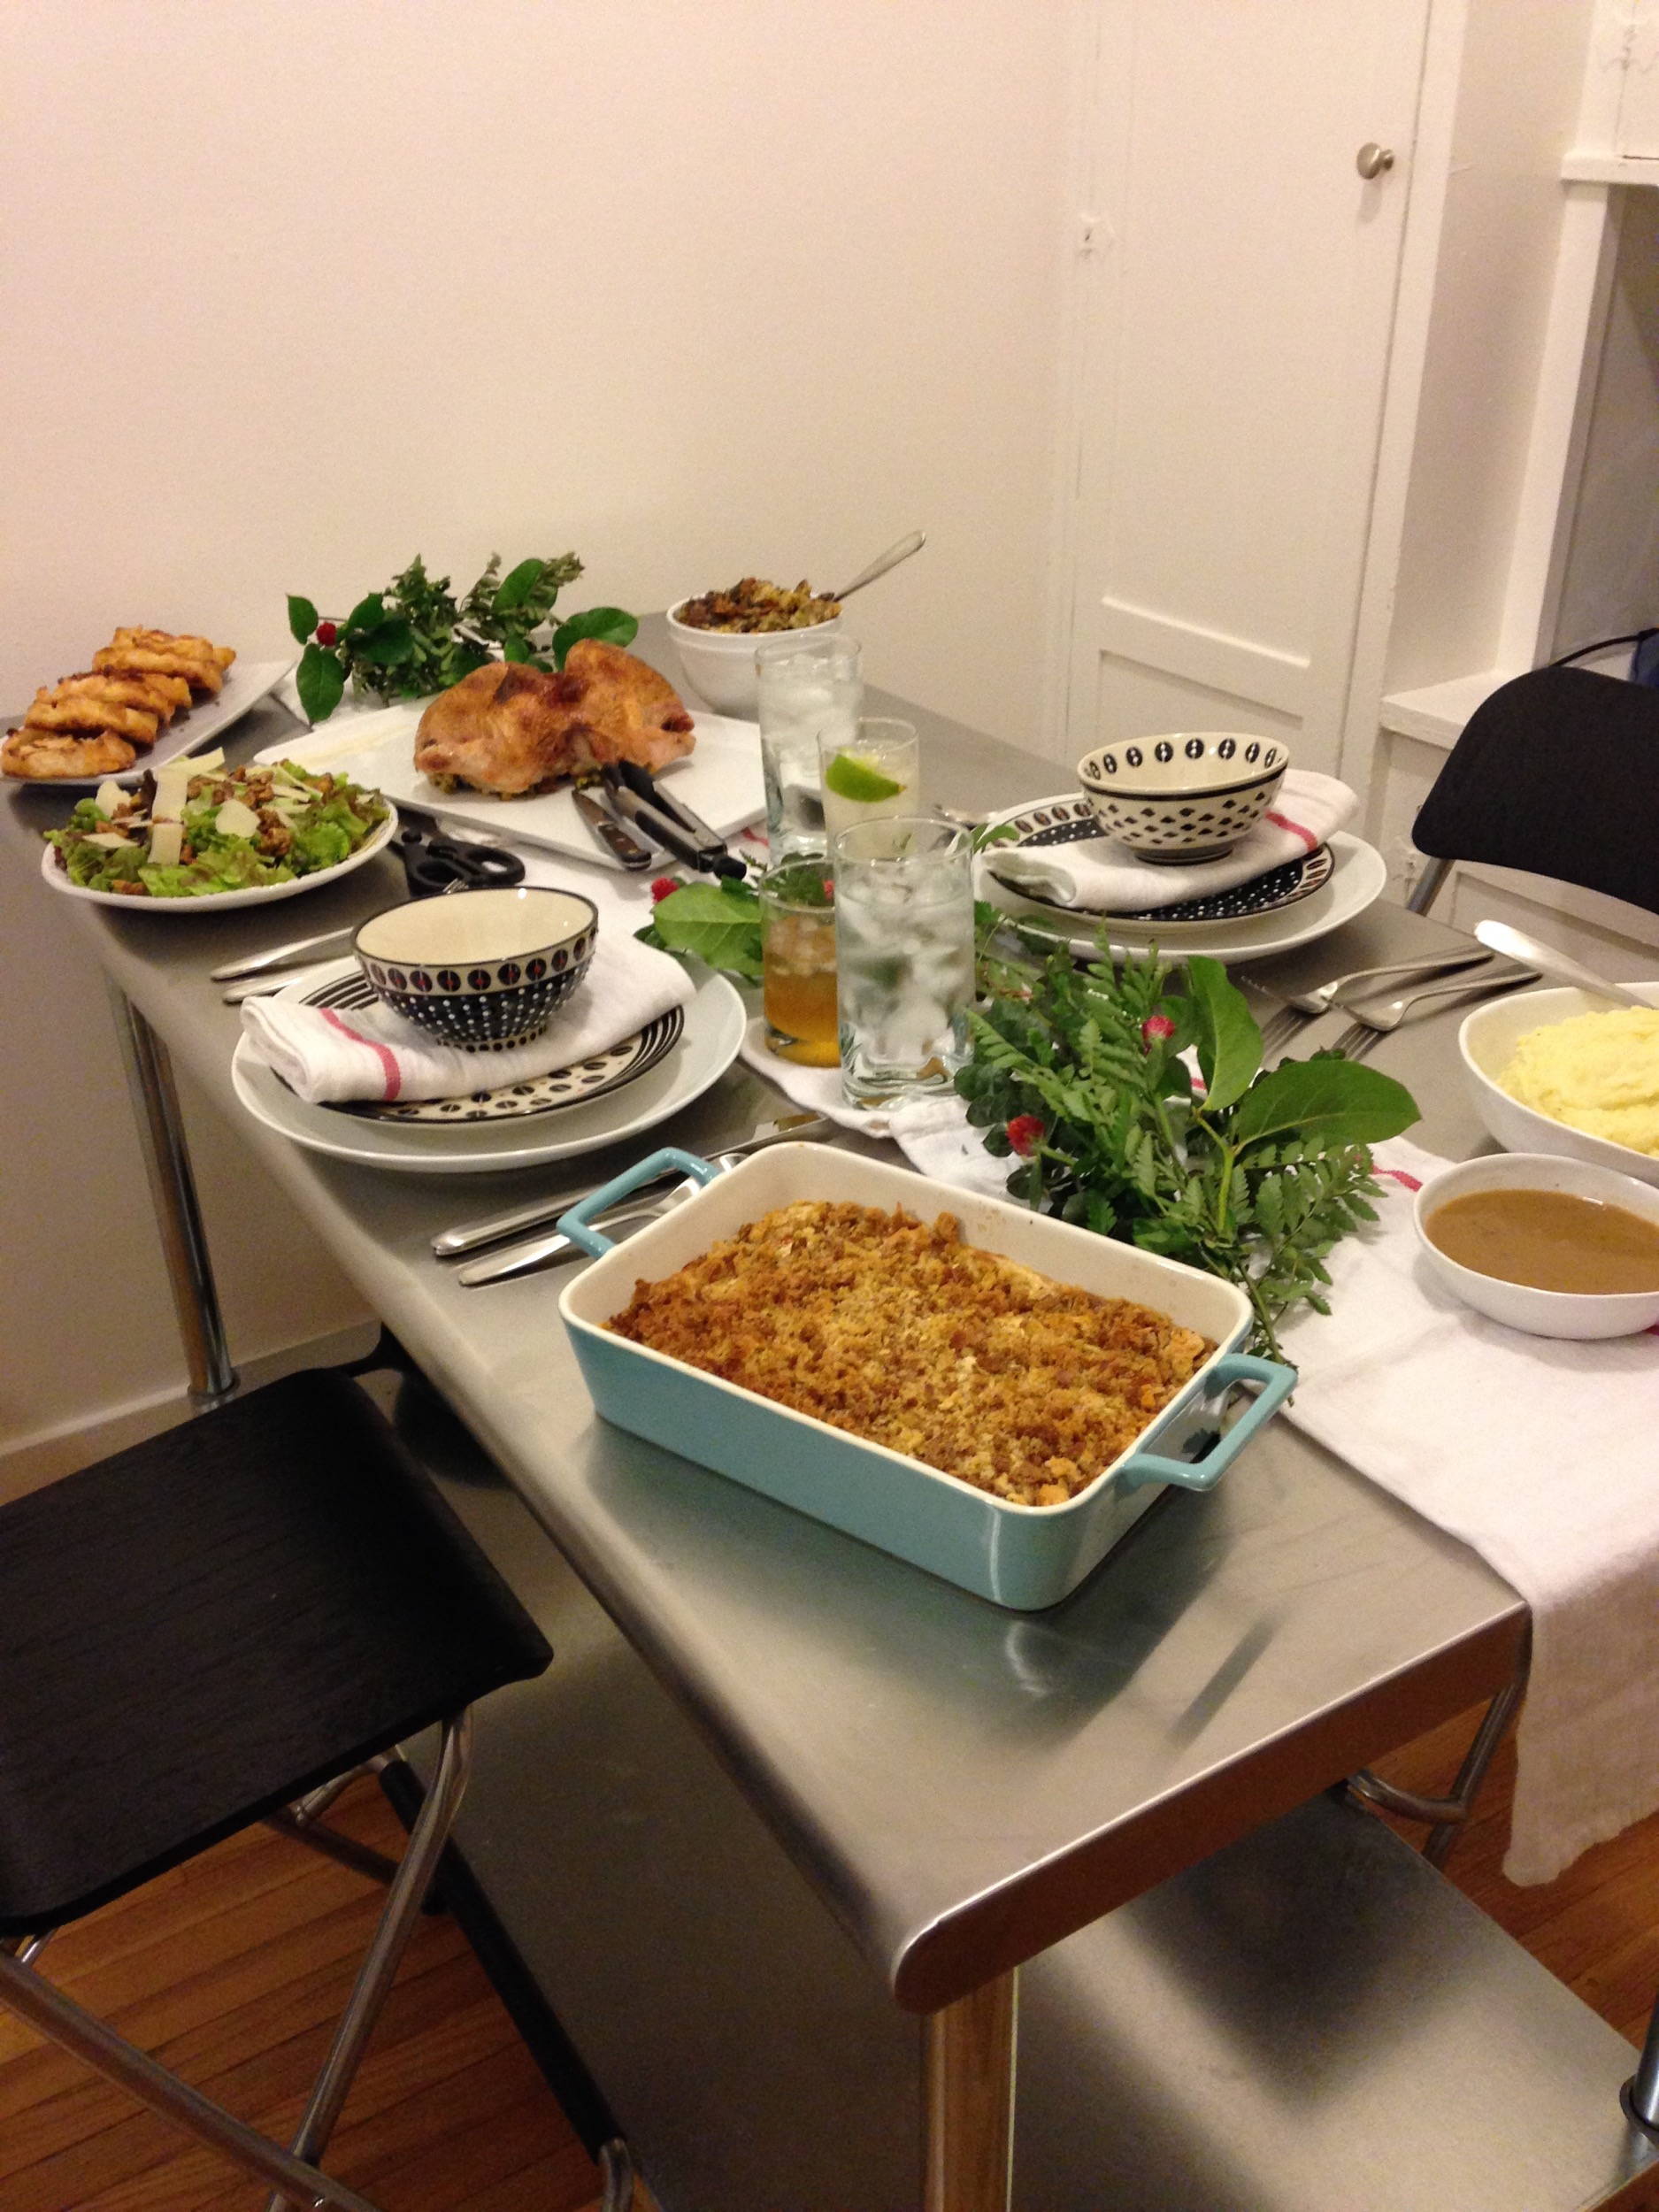 Our first Thanksgiving both as married couple and in San Francisco. It was just the two of us, but as you know Thanksgiving is pretty special to us so we went all out.